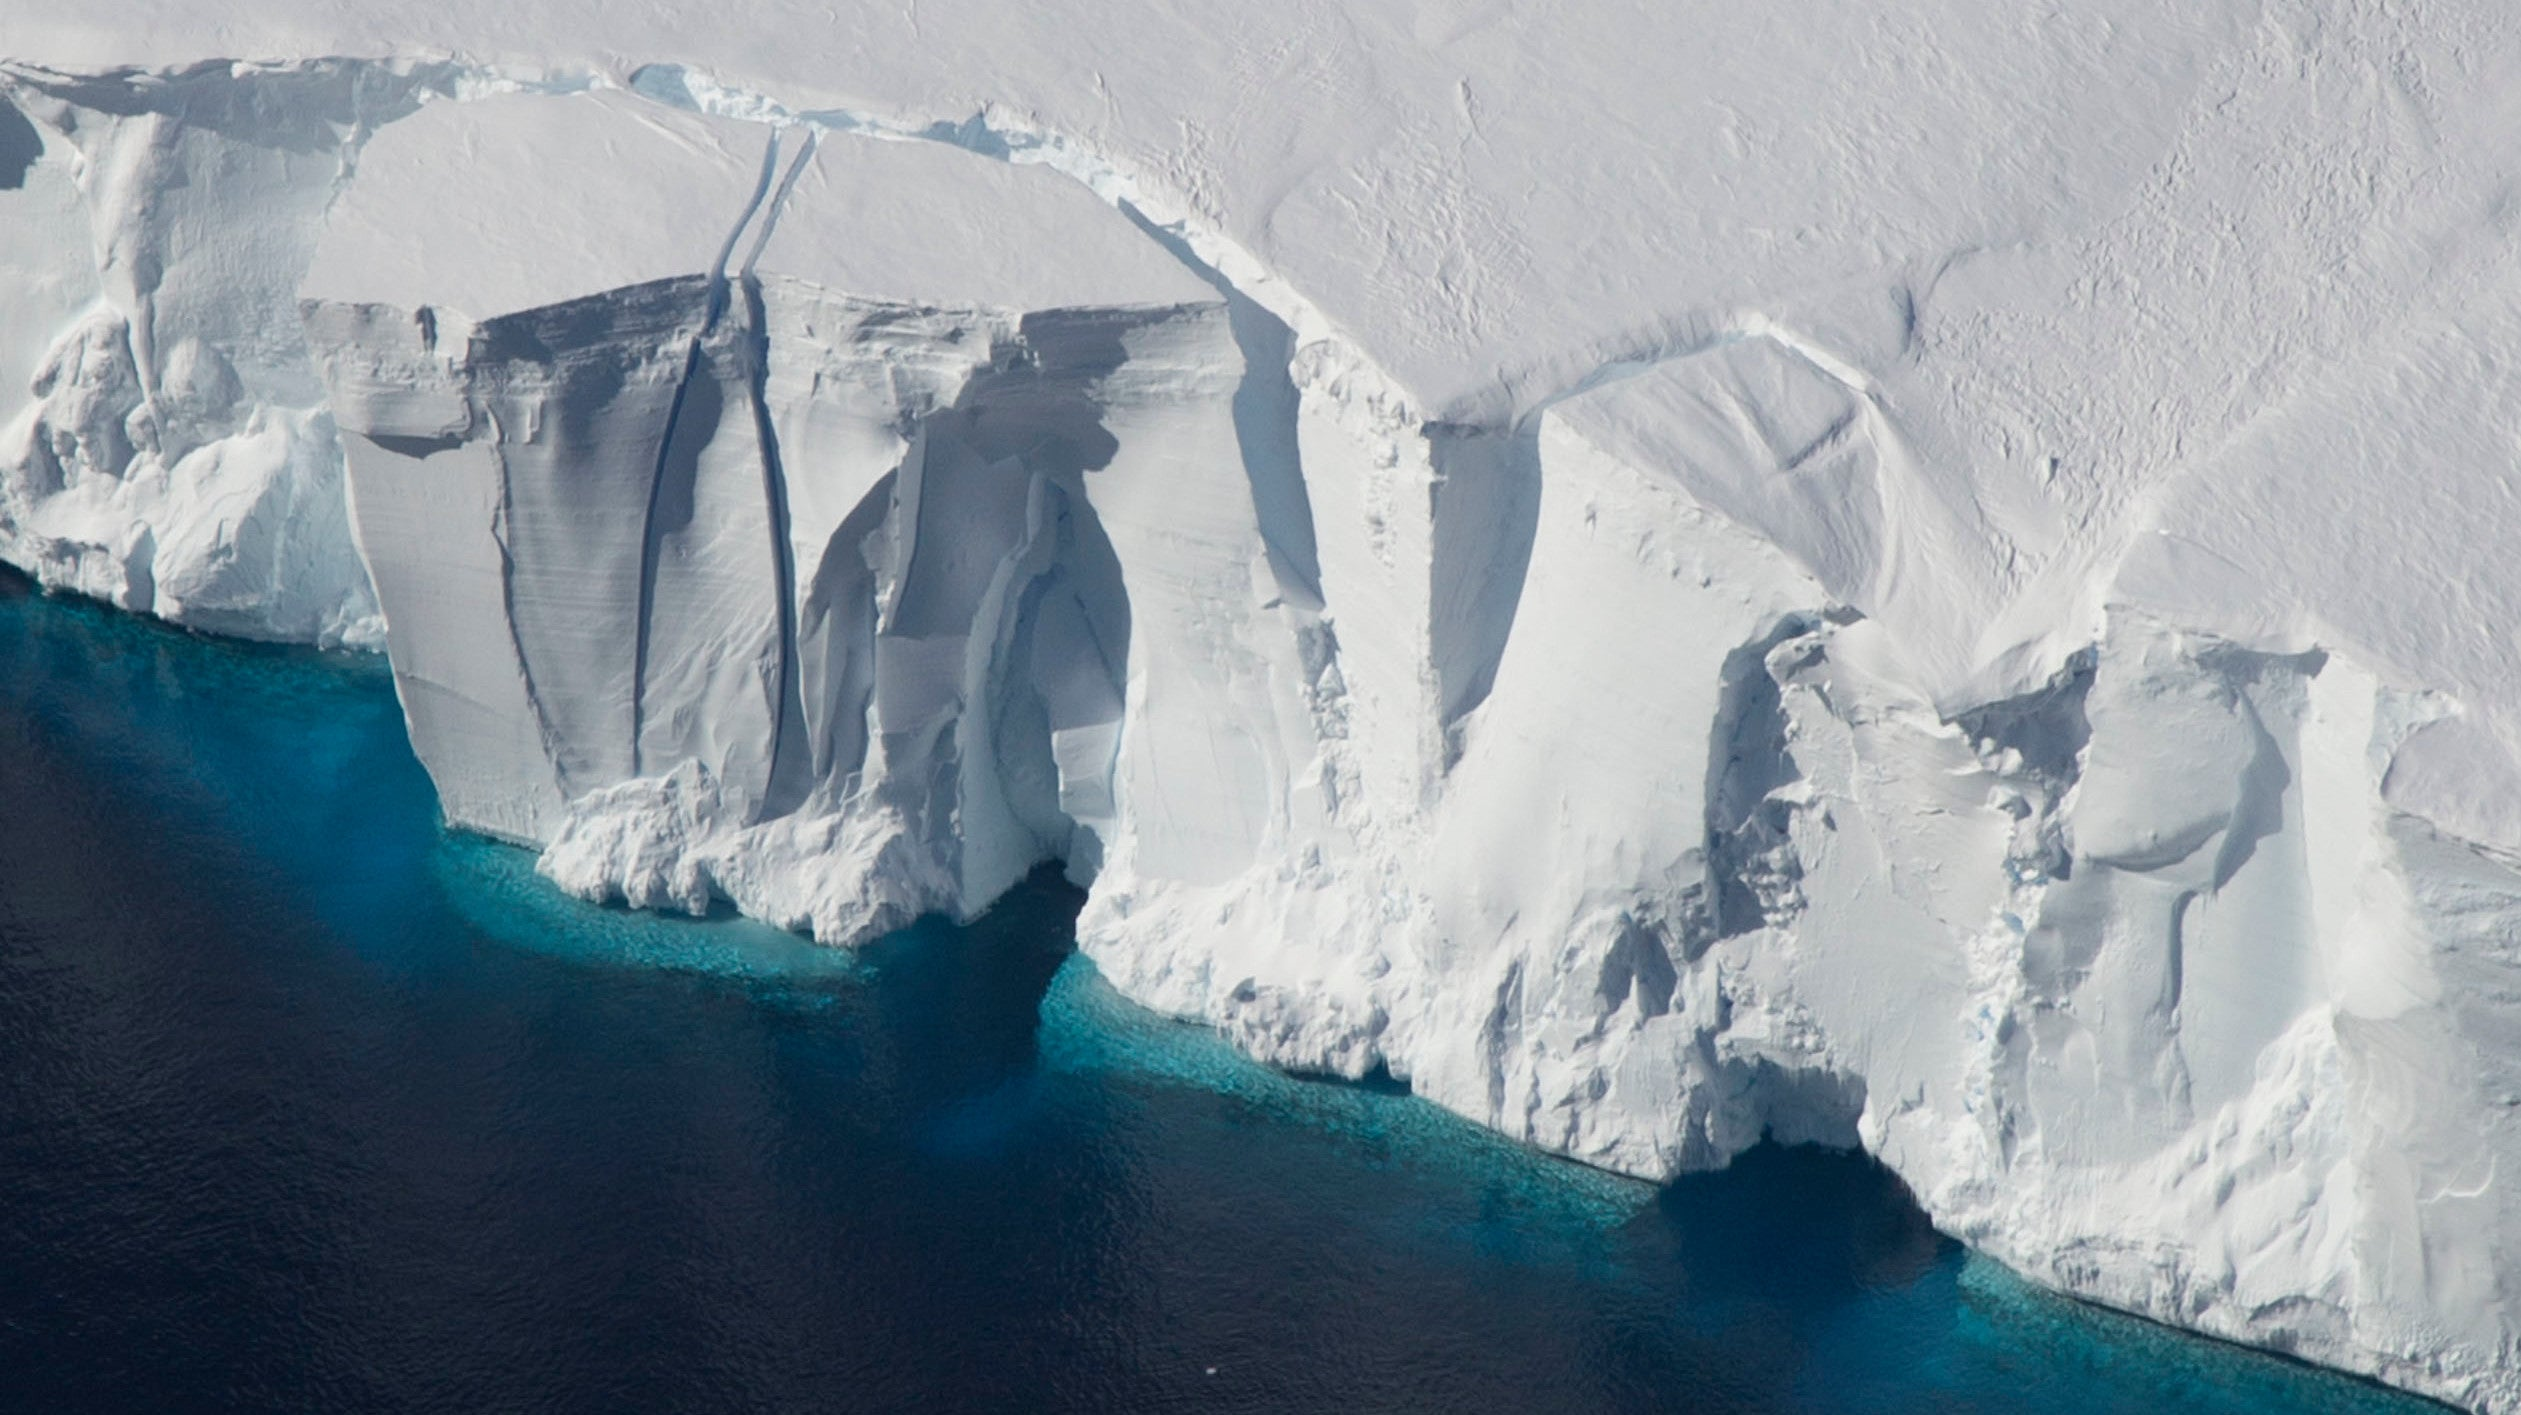 A Quarter Of West Antarctica's Ice Is Now Unstable, Study Finds